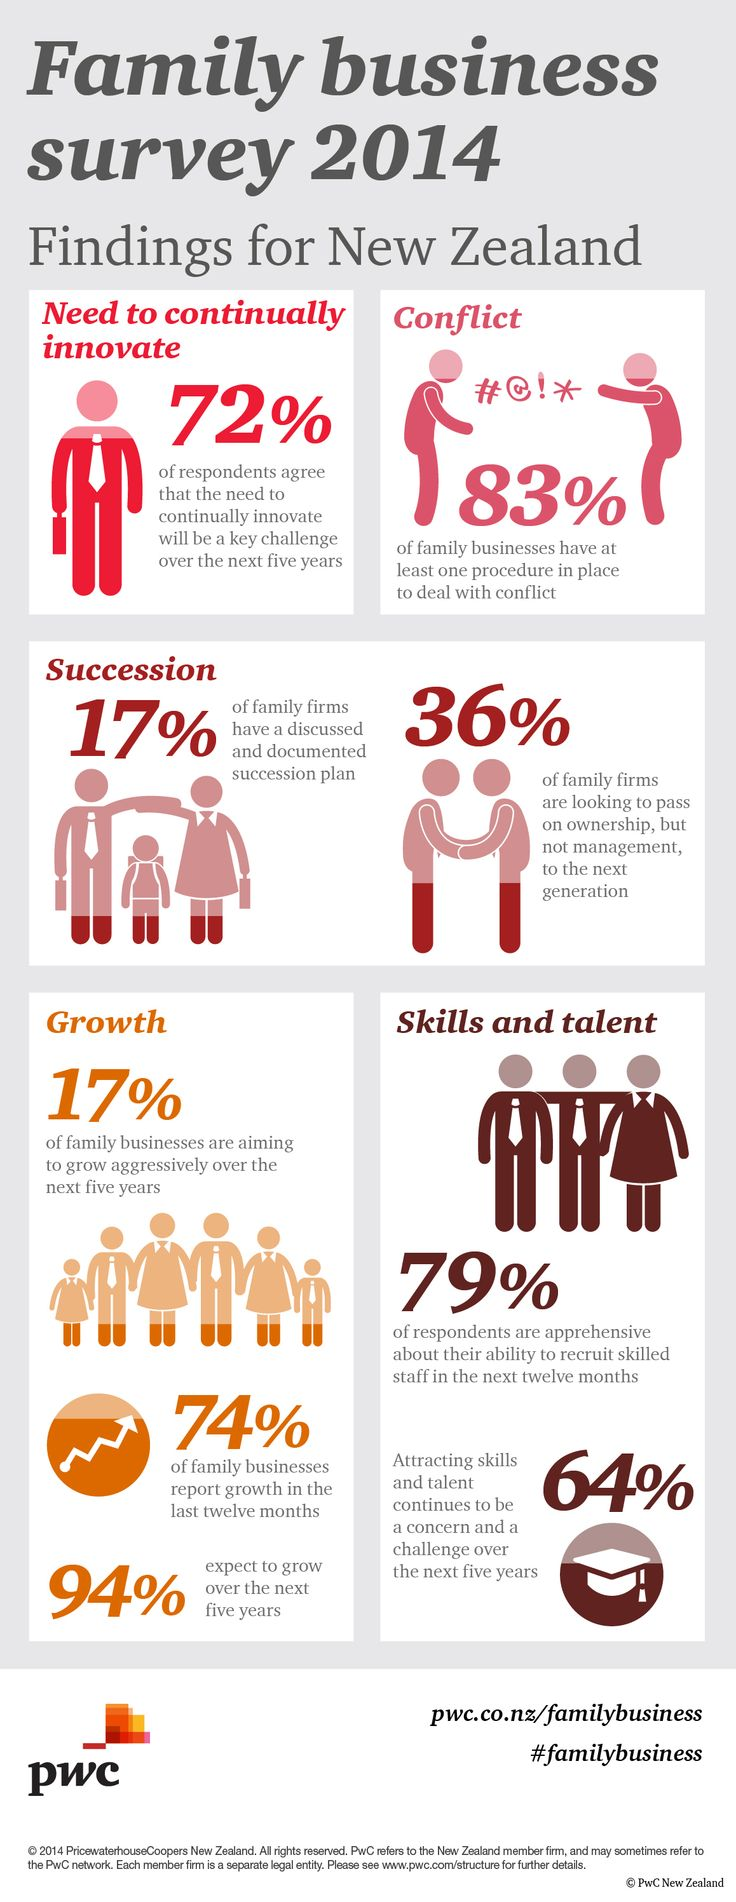 Family business survey 2014 Key findings for New Zealand